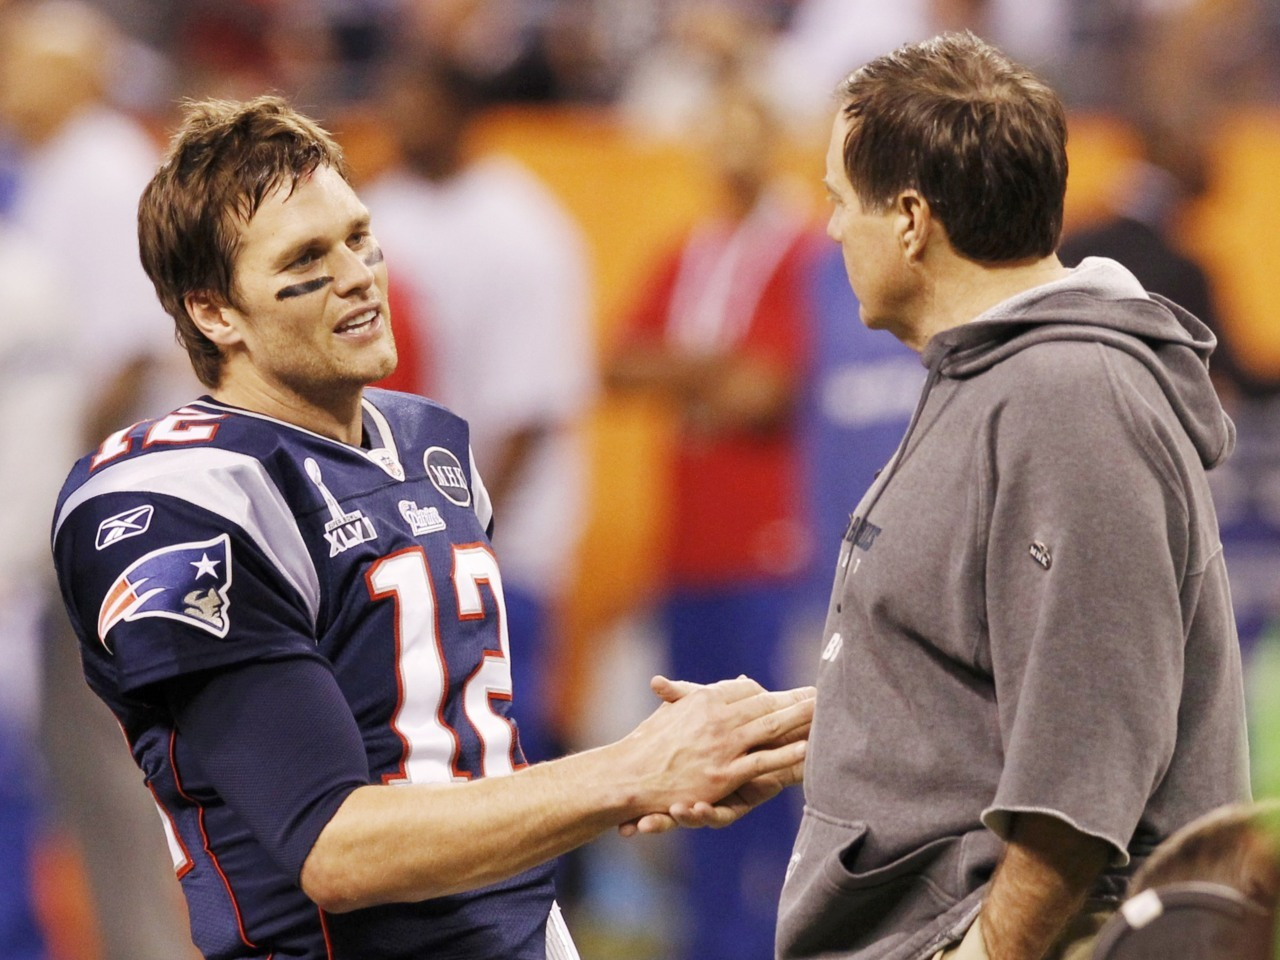 New England Patriots quarterback Tom Brady (L) shakes hands with Patriots head coach Bill Belichick before their team plays the New York Giants in the NFL Super Bowl XLVI football game in Indianapolis, Indiana, February 5, 2012. [REUTERS/Mike Segar] Read and participate in the Super Bowl XLVI live blog on Reuters.com